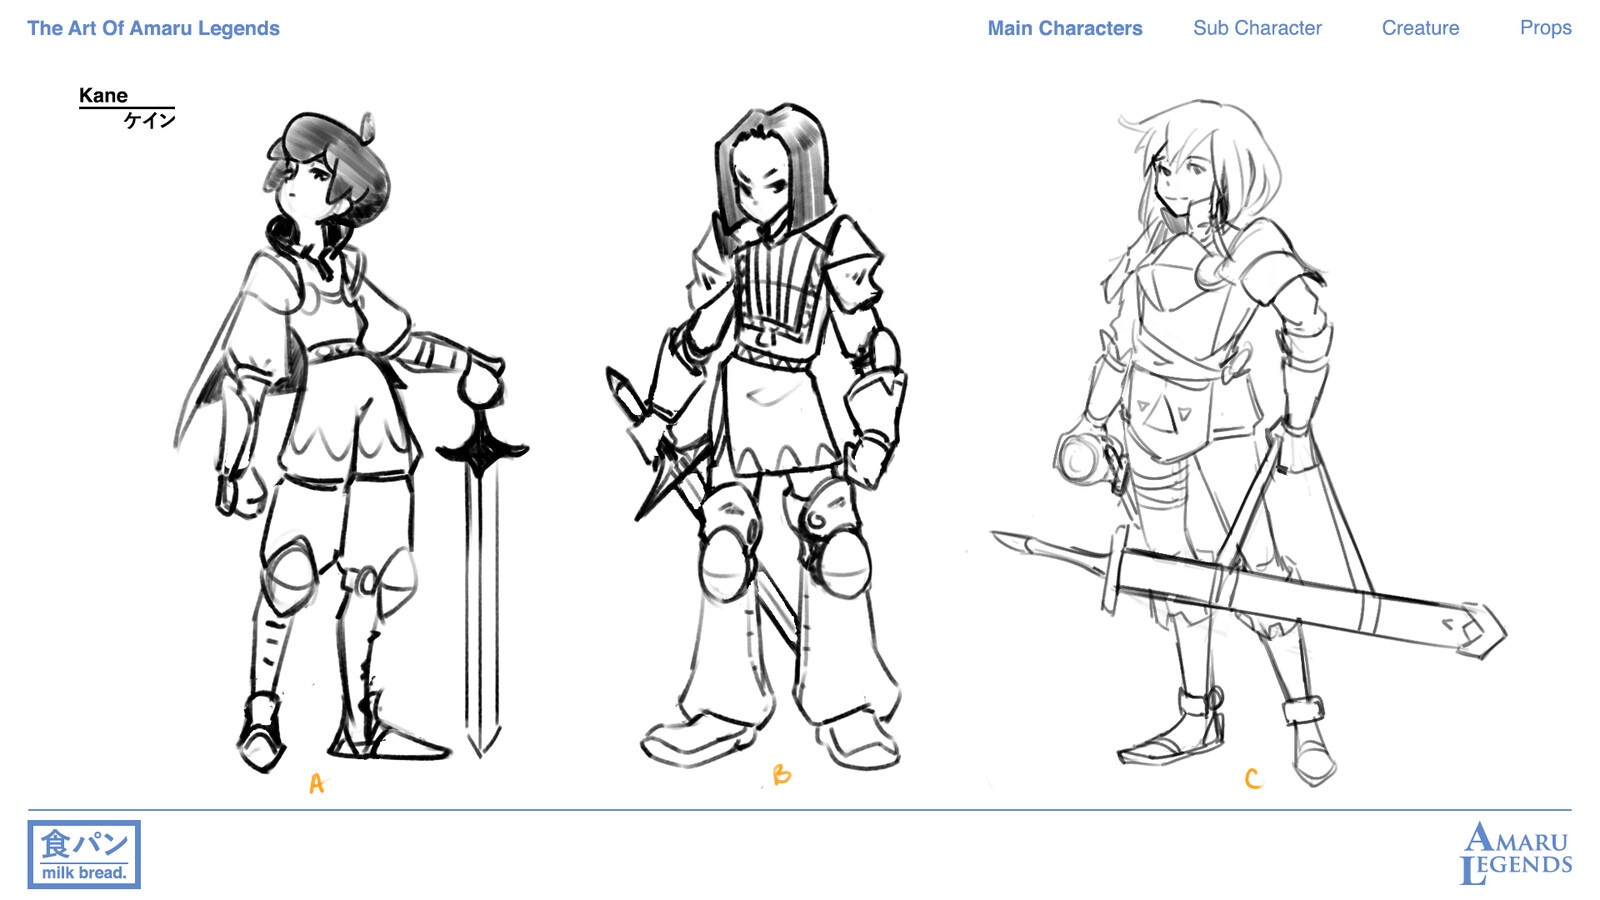 First Sketch Iterations of Main Protagonist